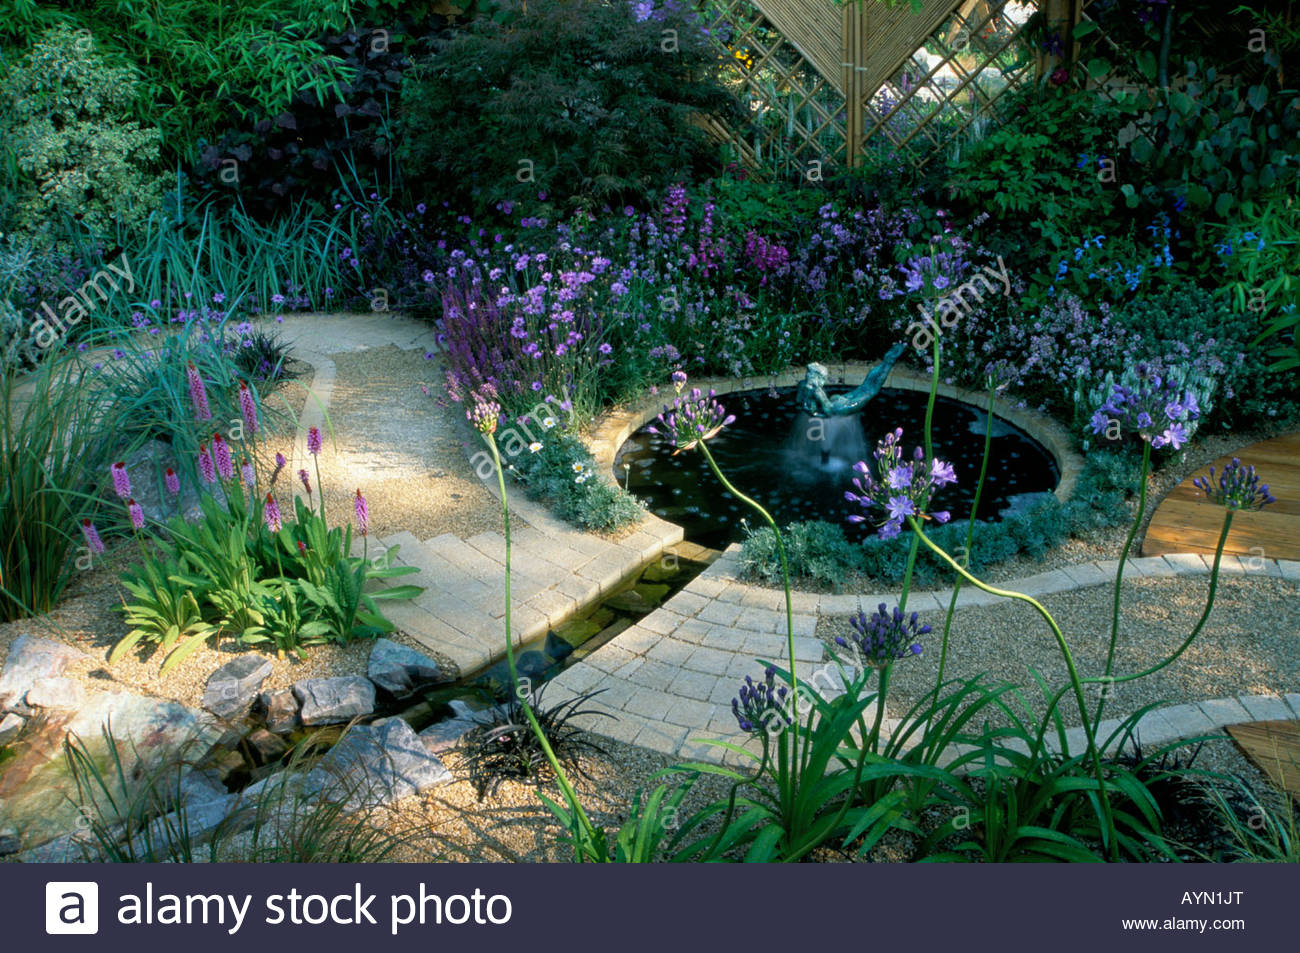 Feng shui garden design pamela woods cool blue colour for Feng shui garden designs